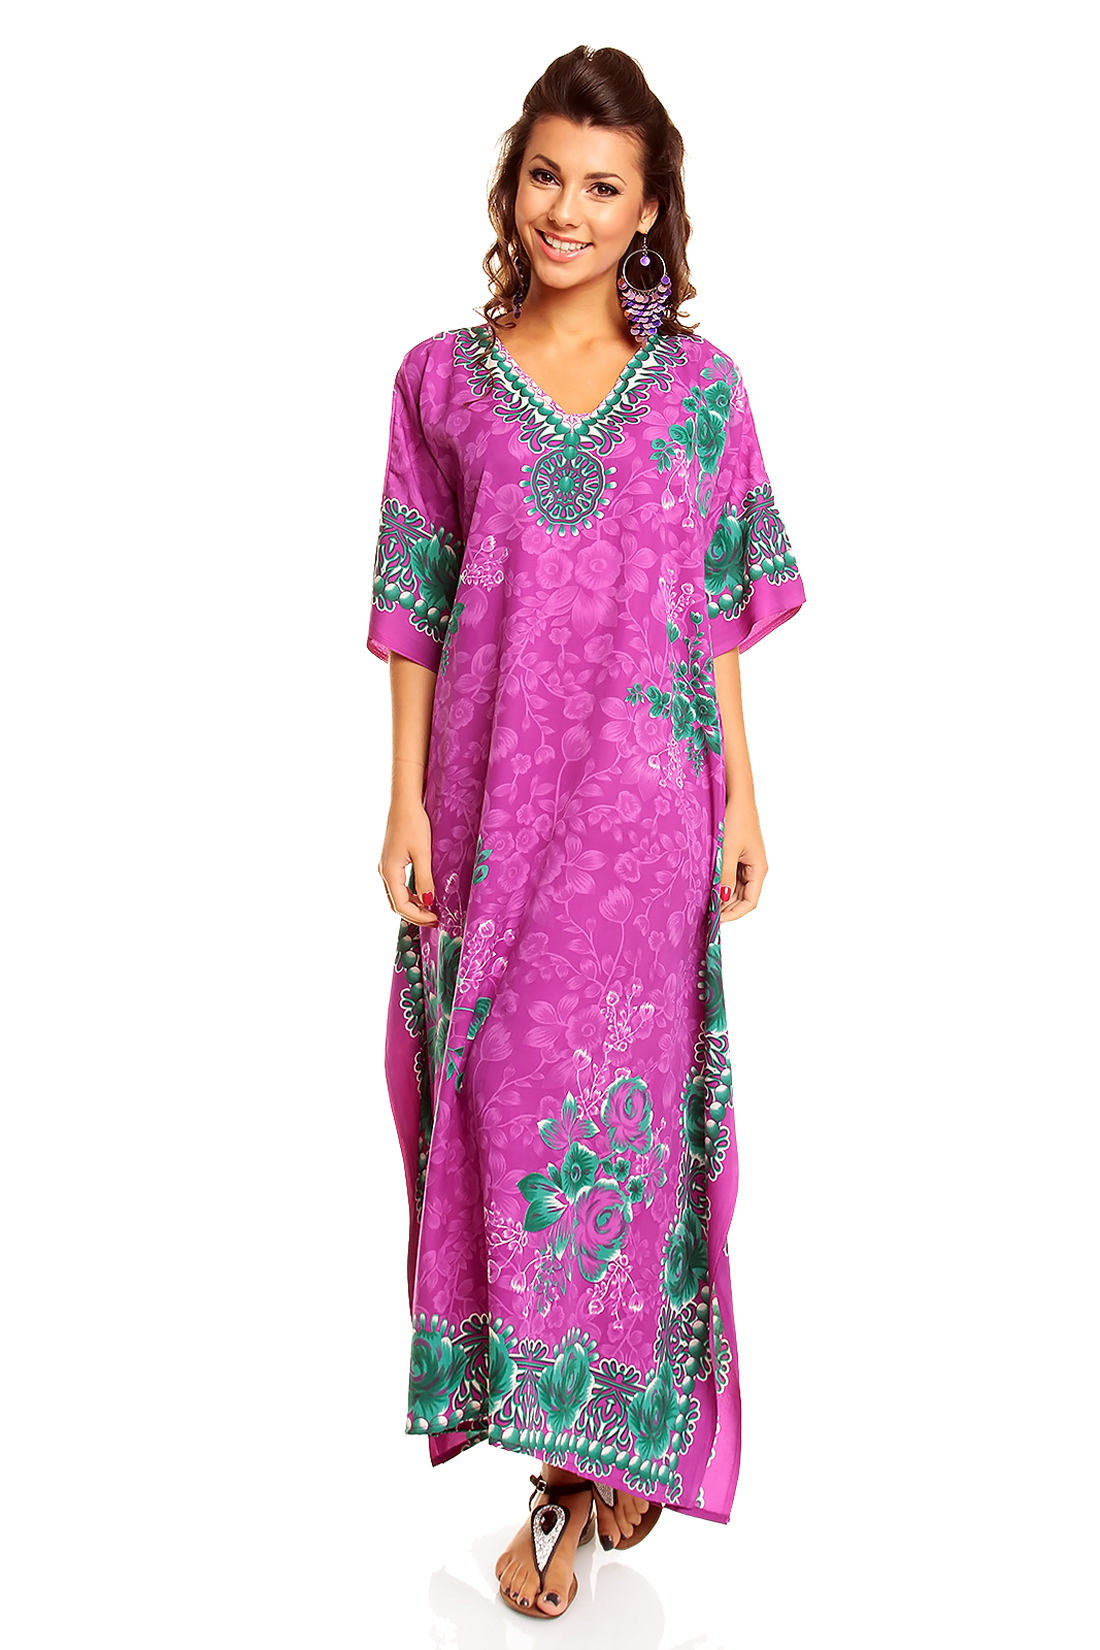 You searched for: long kaftan dress! Etsy is the home to thousands of handmade, vintage, and one-of-a-kind products and gifts related to your search. No matter what you're looking for or where you are in the world, our global marketplace of sellers can help you find unique and affordable options. Let's get started!